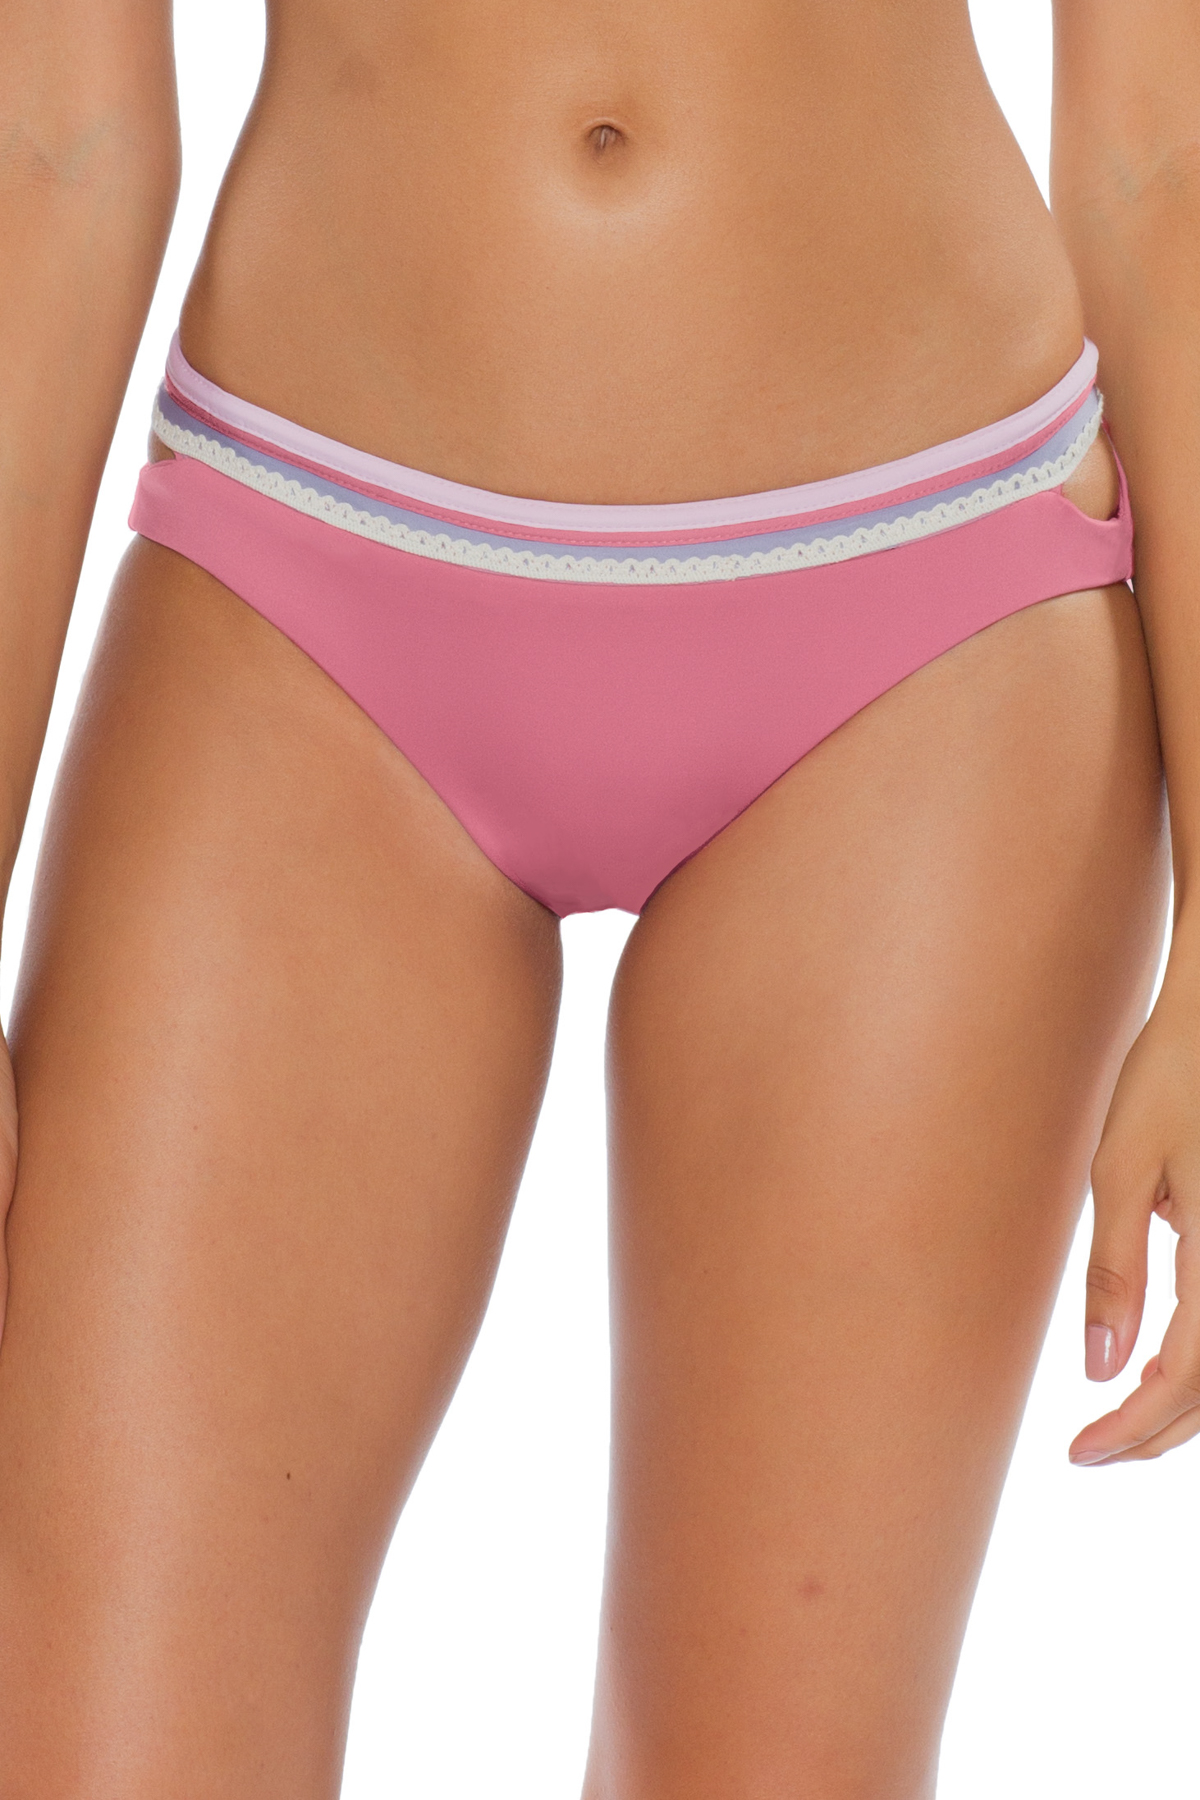 Banded Hipster Bikini Bottom - Mulberry 5